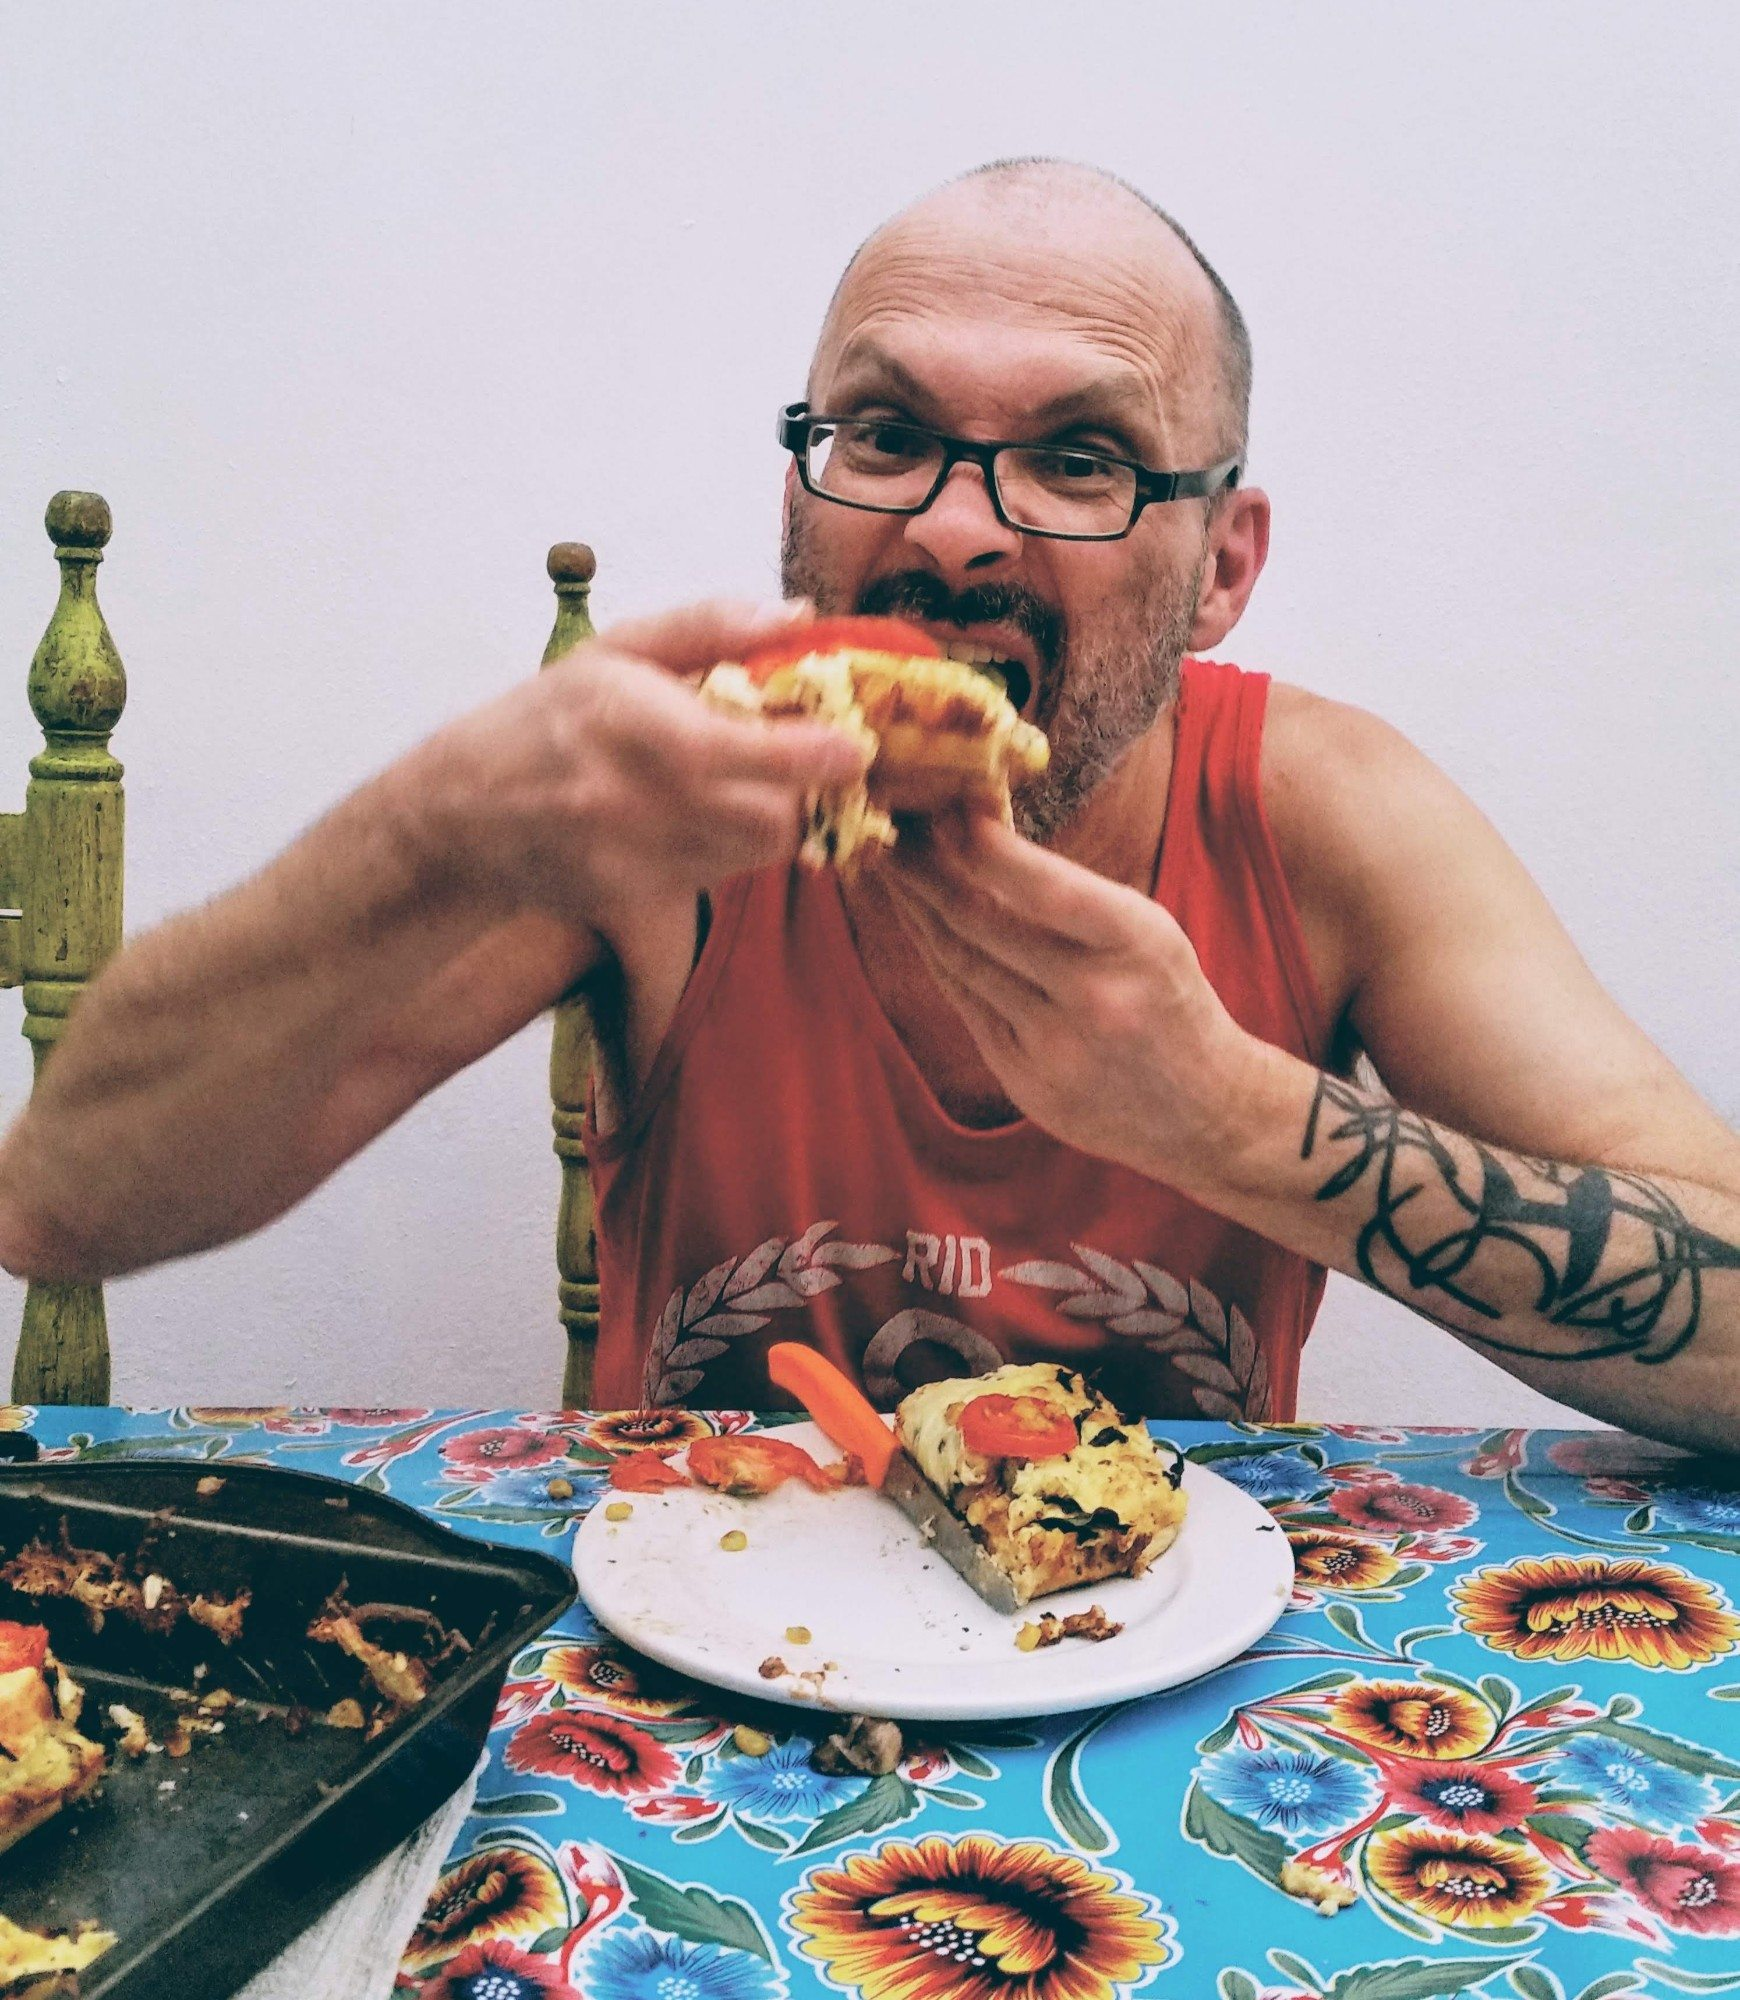 Rick Powell eating his pizza at Hostel Home Mexico City